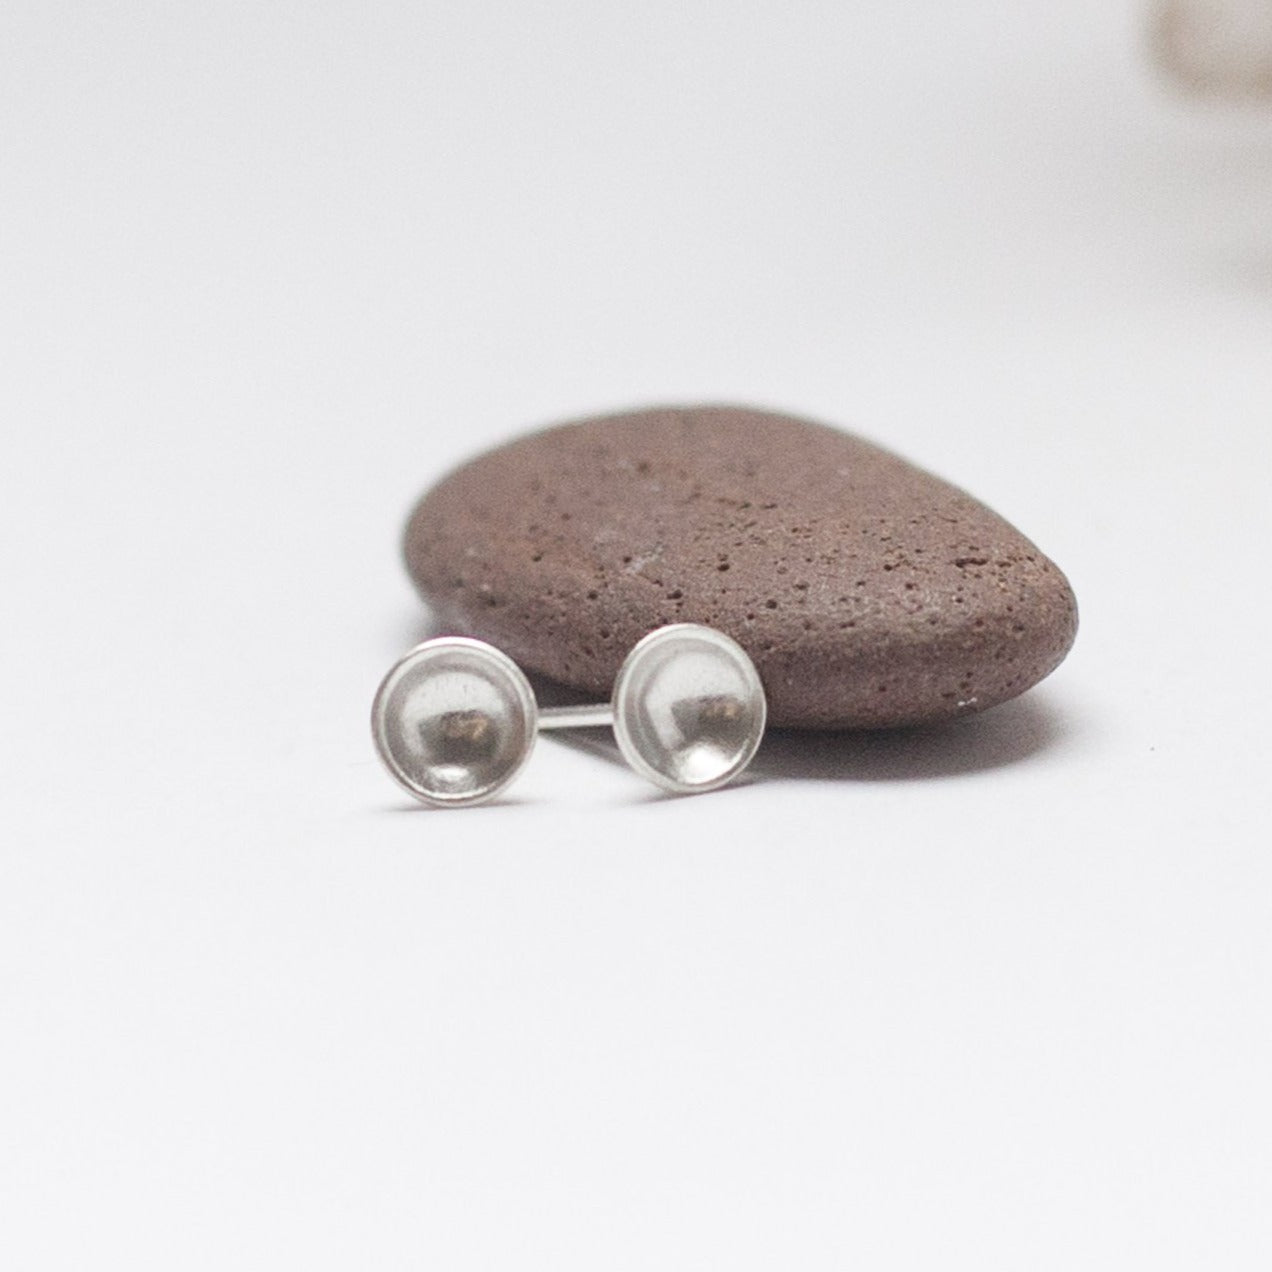 Small silver bowl earrings (6mm ø)